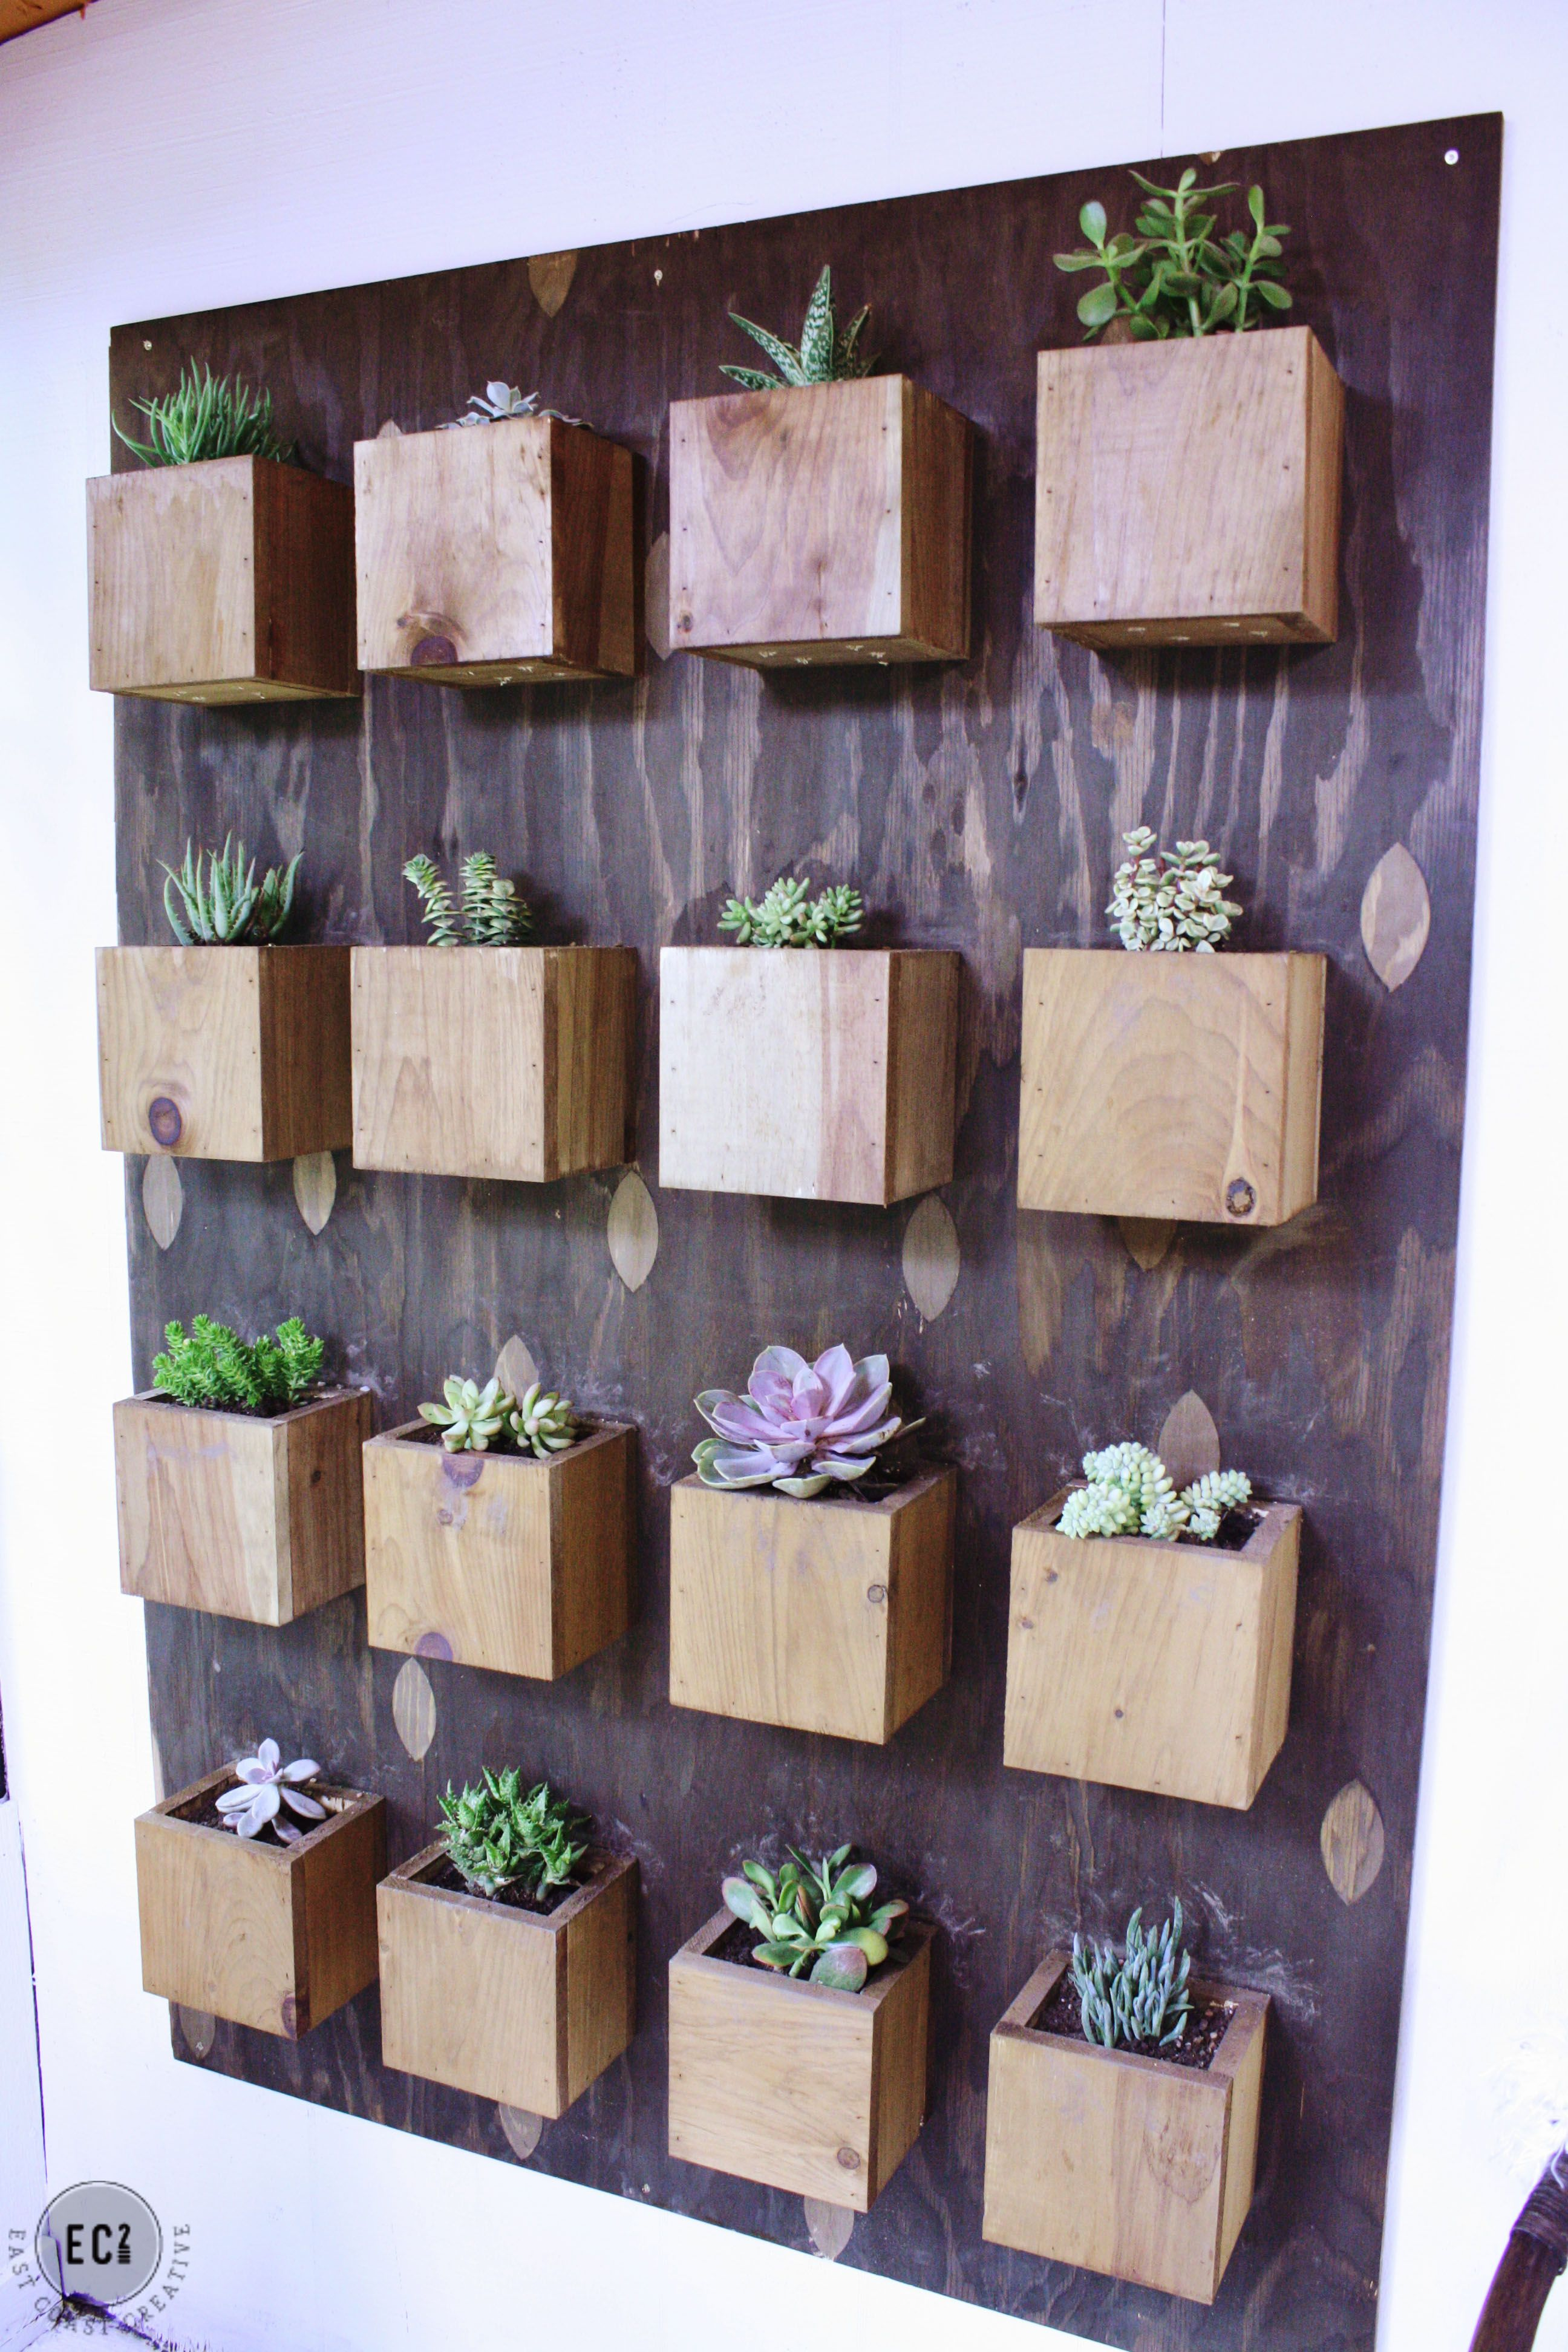 Urban wall gardening - Make Your Own Diy Garden Wall Perfect For Succulents Or Other Plants This Simple Tutorial